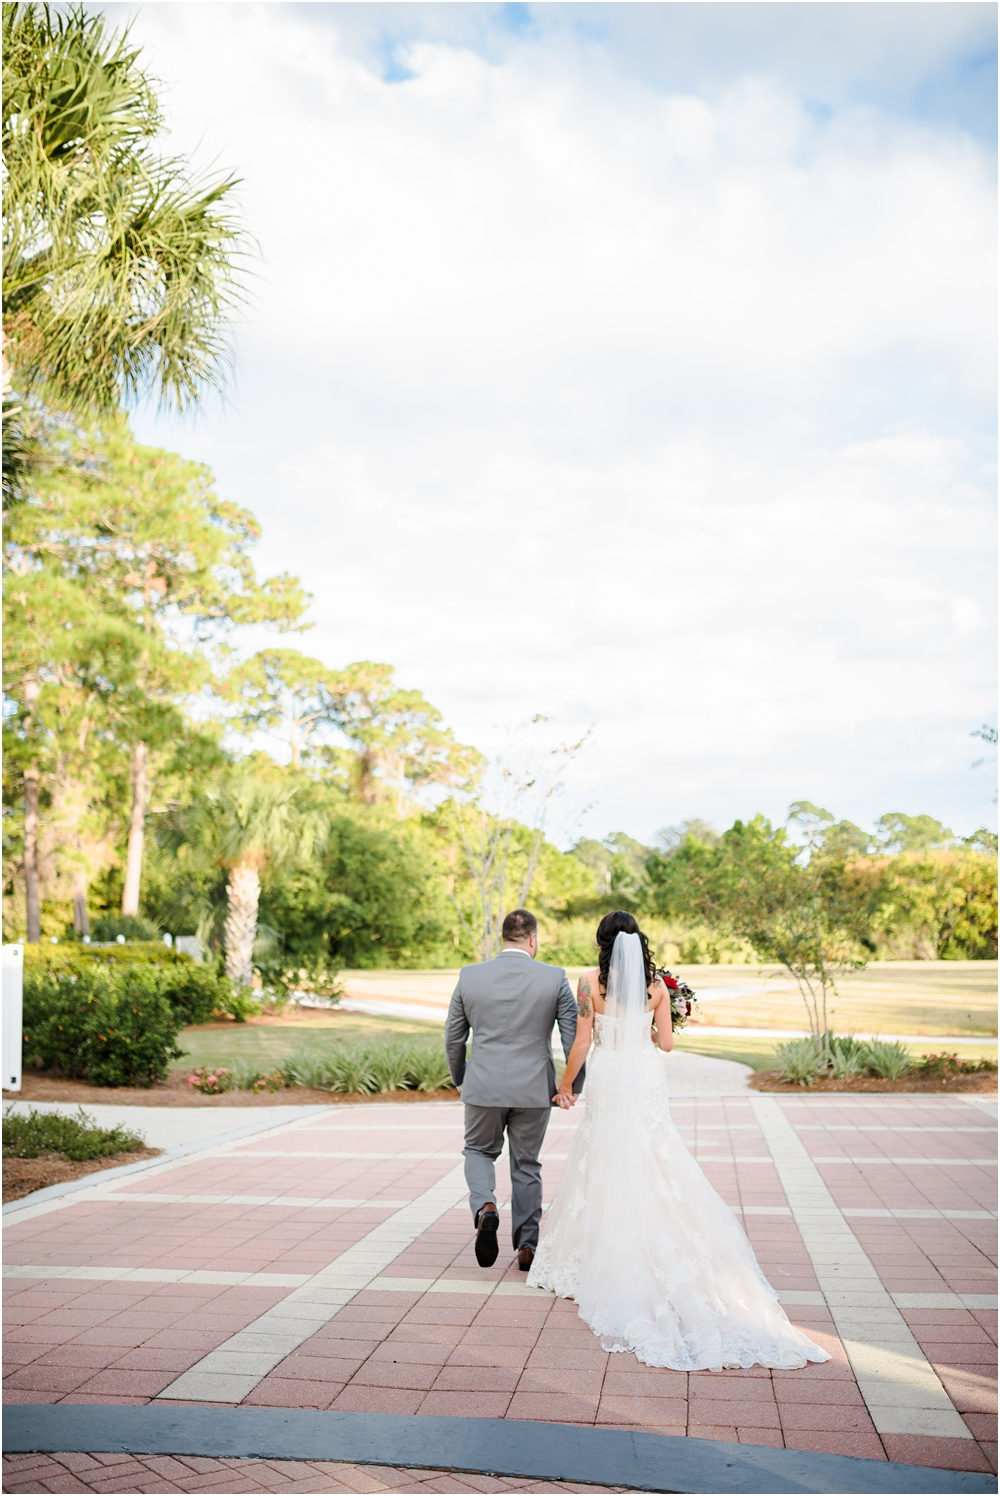 imhof-sheraton-panama-city-beach-florida-wedding-photographer-kiersten-grant-96.jpg